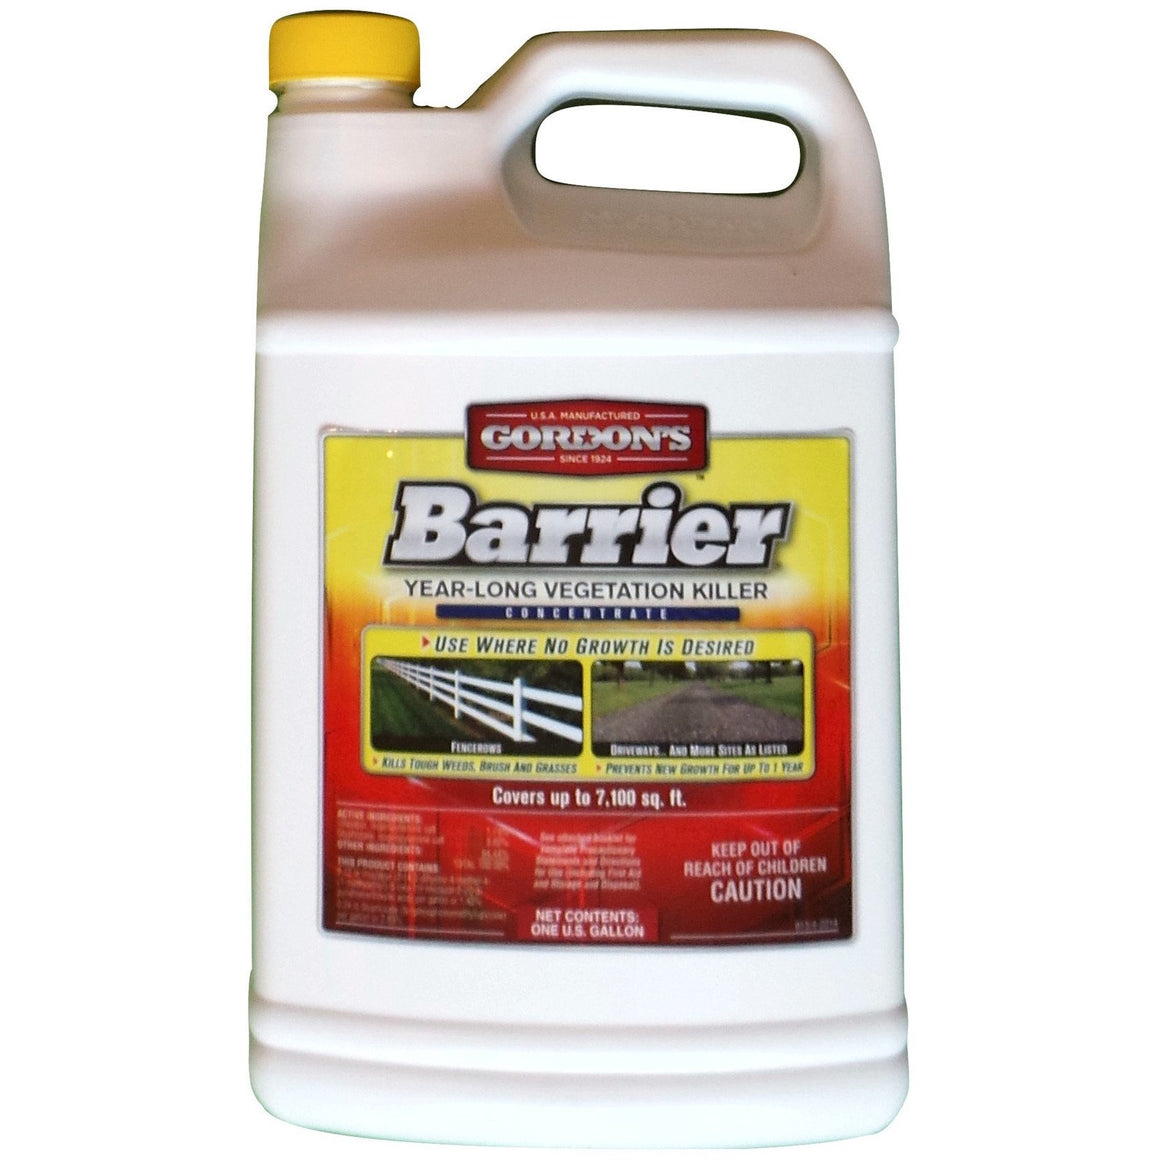 Gordon's Barrier Year-Long Vegetation Killer - 1 Gallon